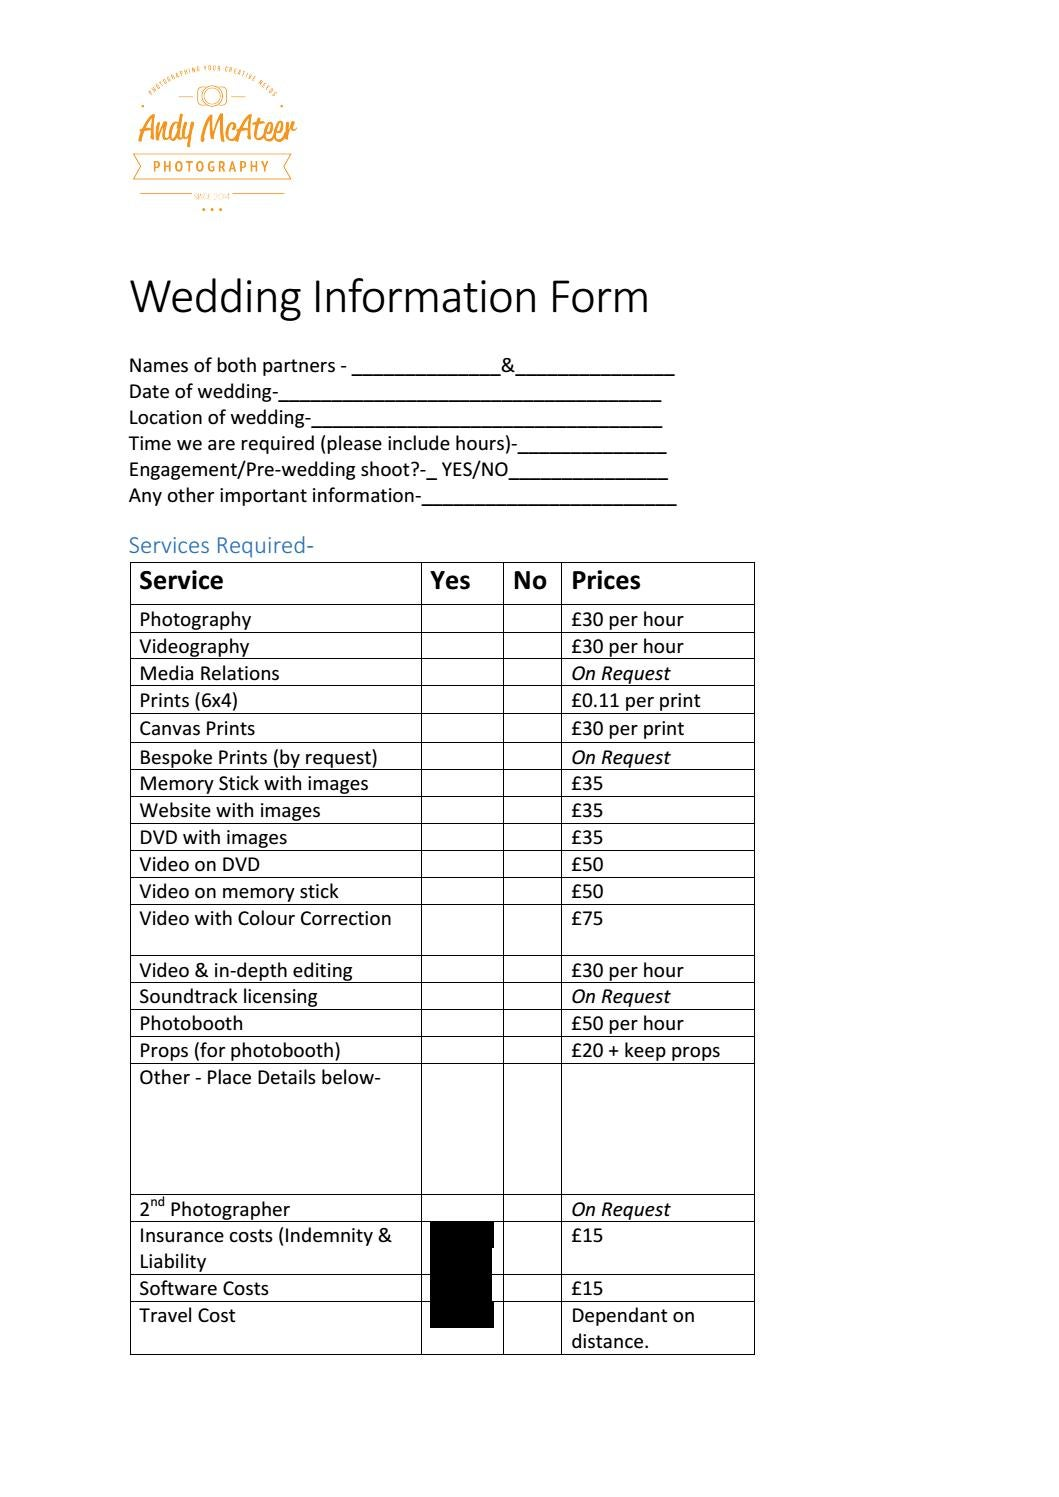 Wedding Information Form By Andy McAteer